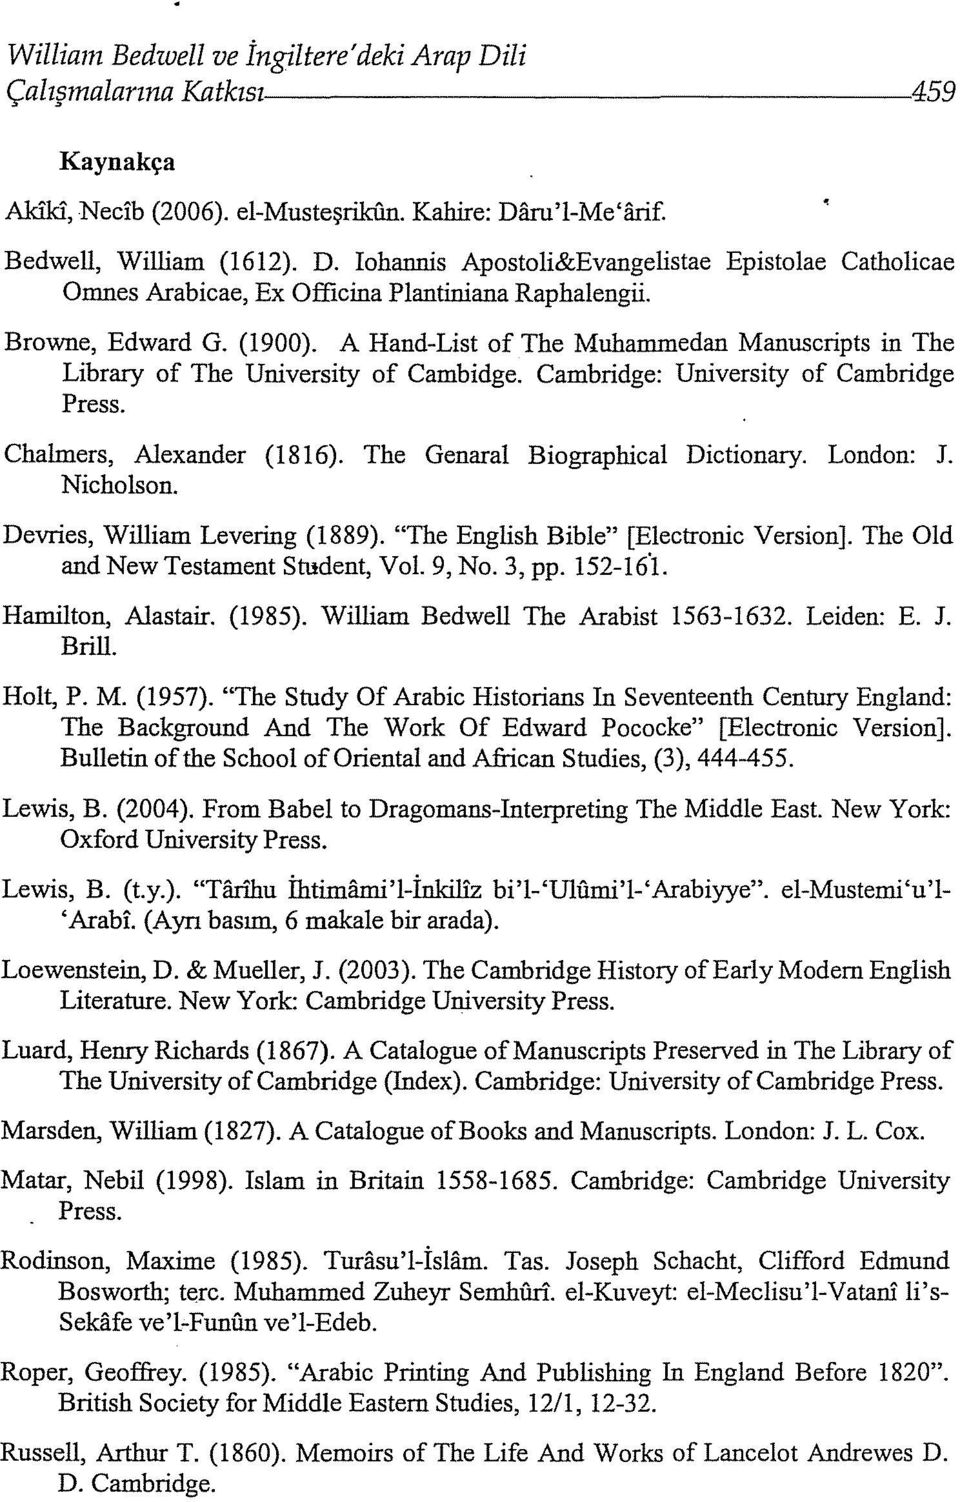 "The Genaral Biographical Dictionary. London: J. Nicholson. Devries, William Levering (1889). ""The English Bible"" [Electronic Version]. The Old and New Testament Student, Vol. 9, No. 3, pp. 152-16'1."